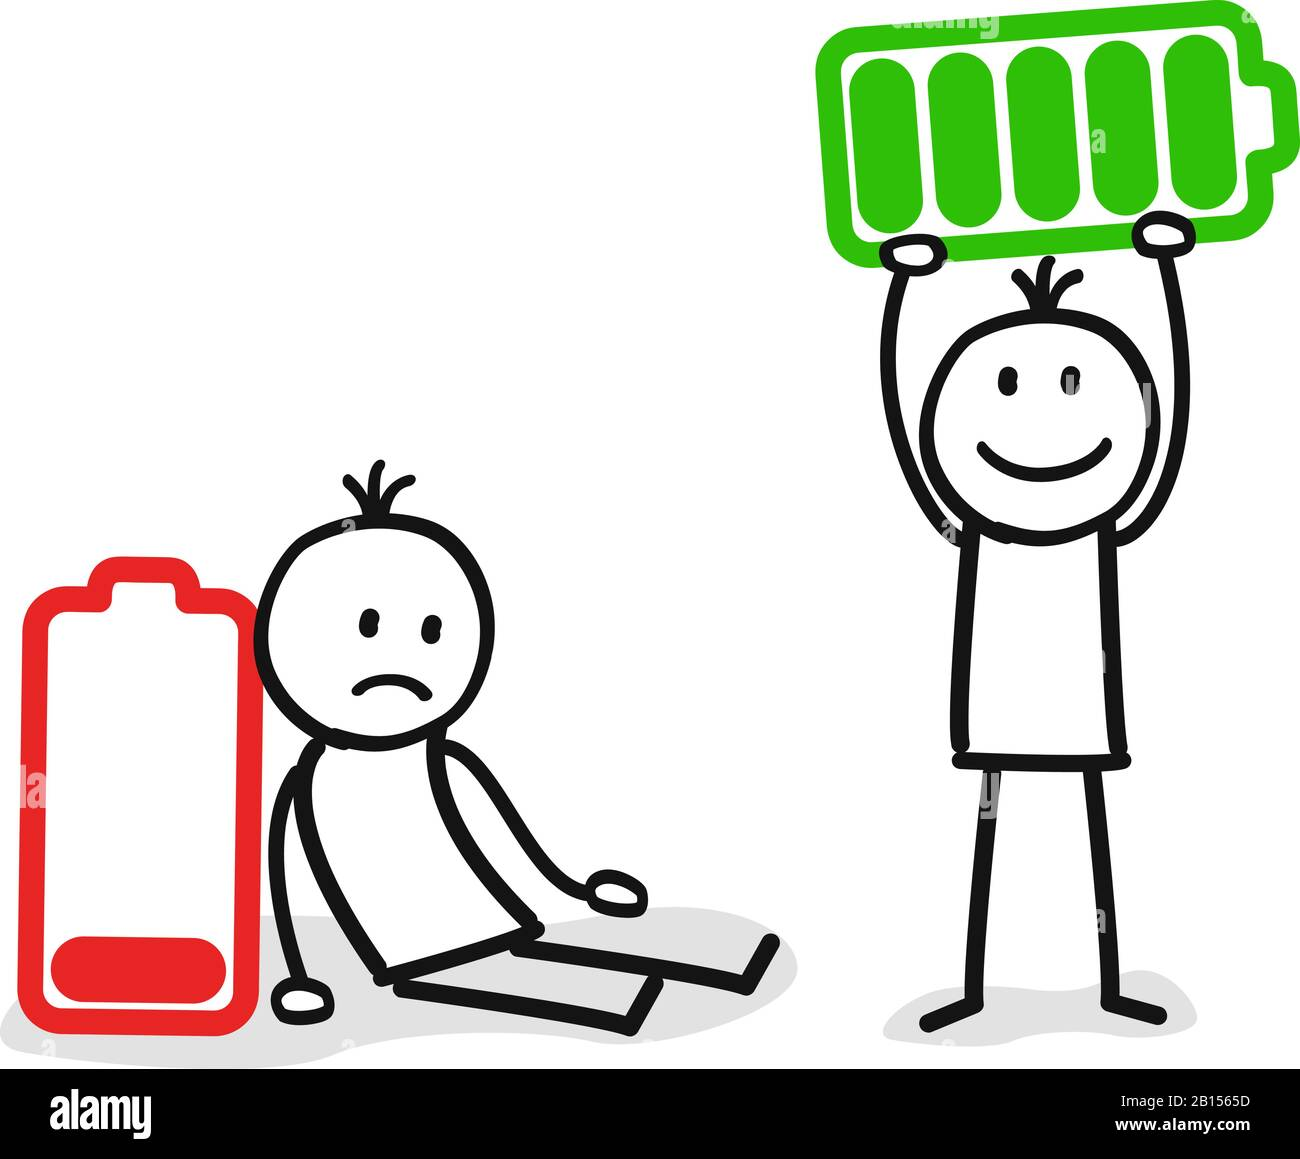 person with low energy and full energy Stock Vector Image & Art - Alamy